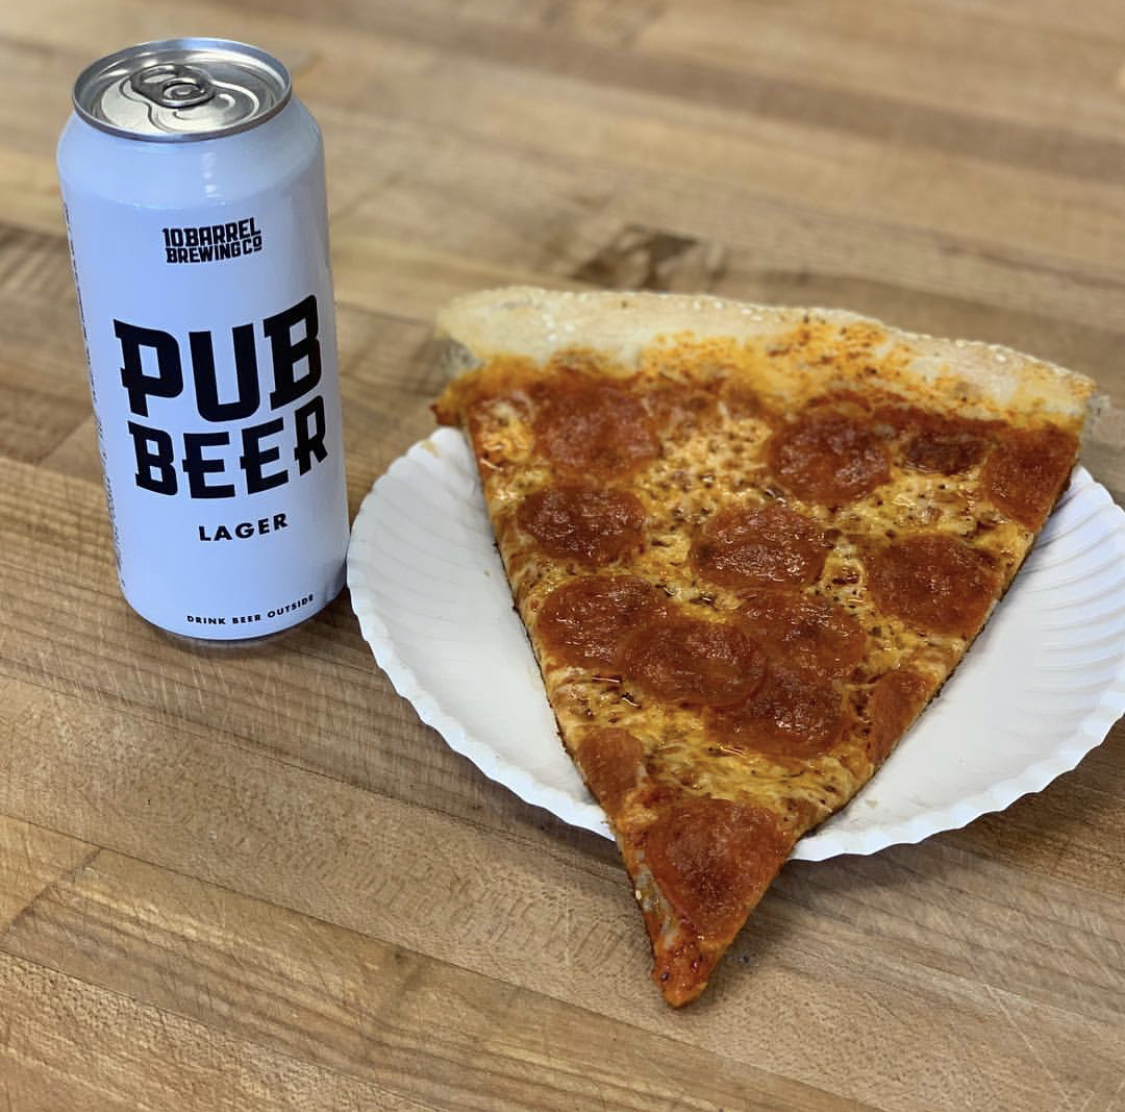 Best Pizza And Beer In Bend